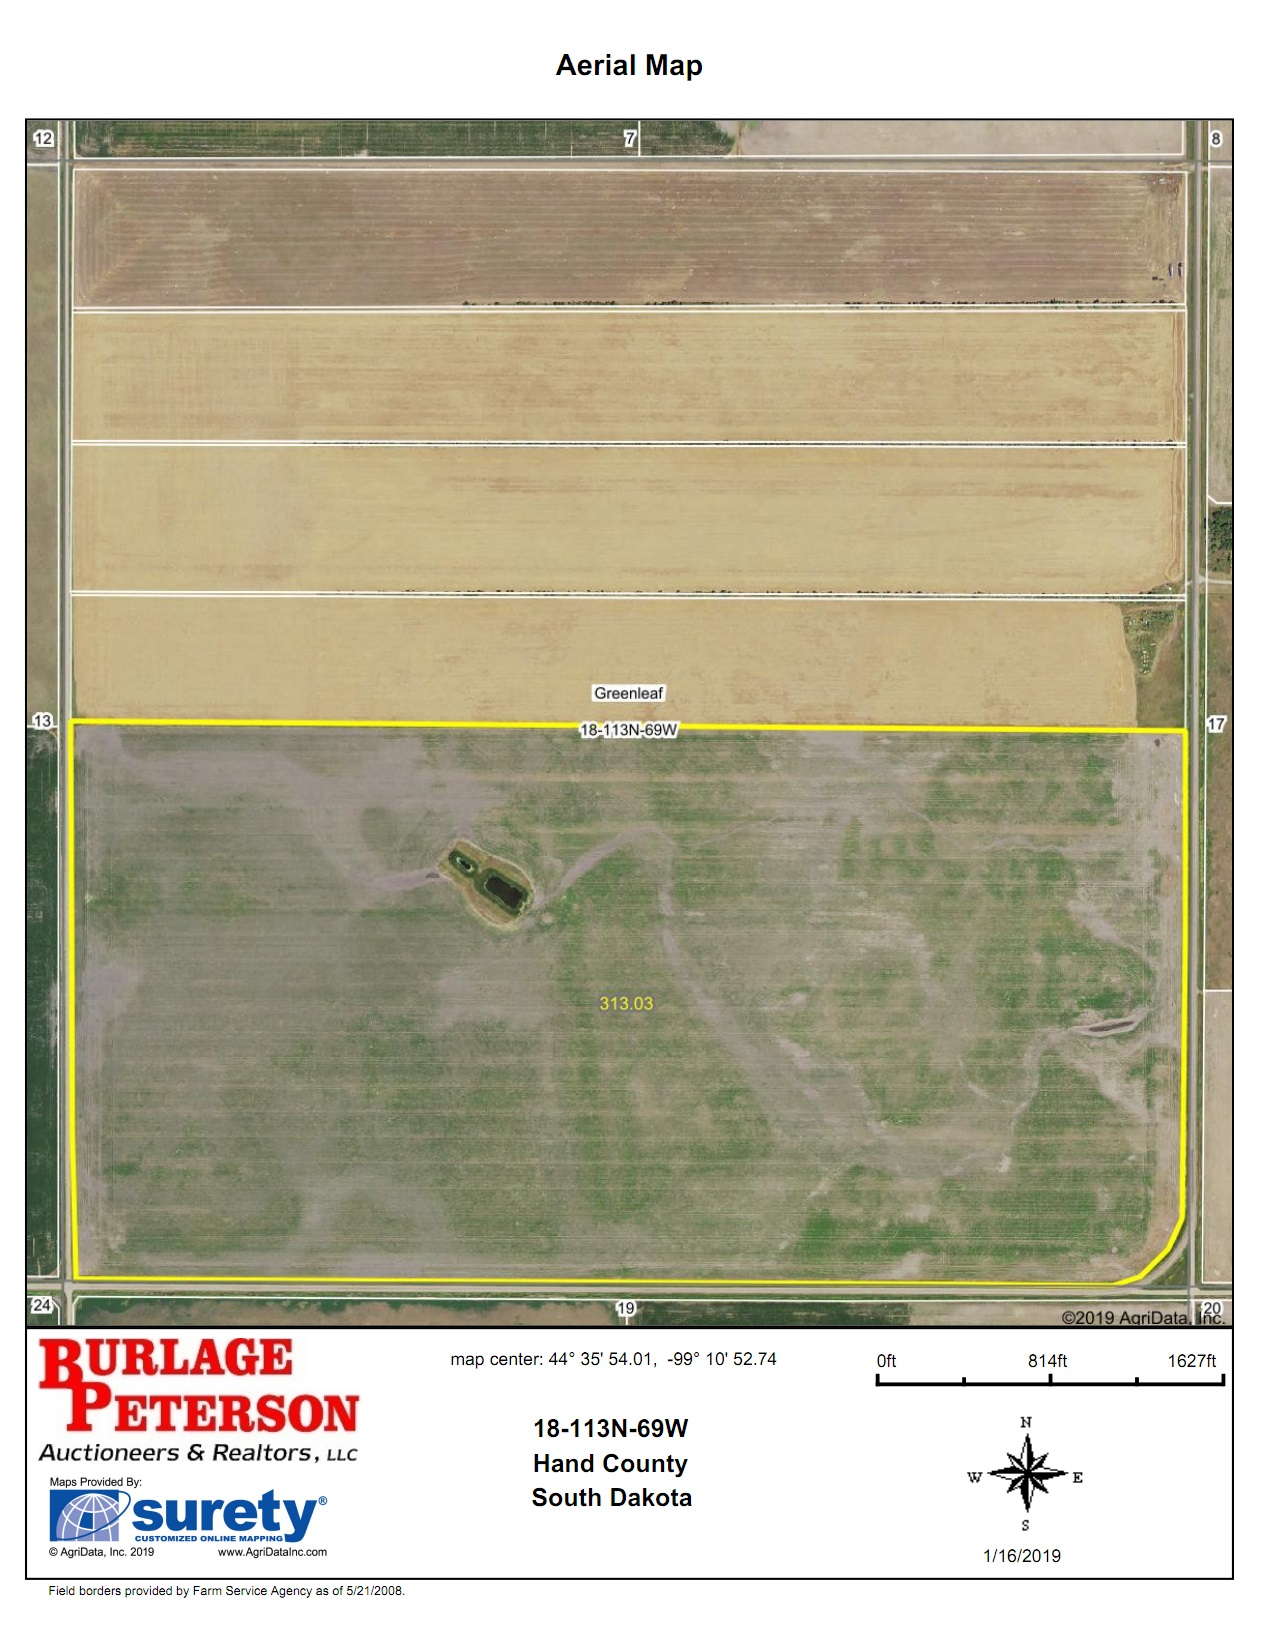 Tract 10 Aerial Map